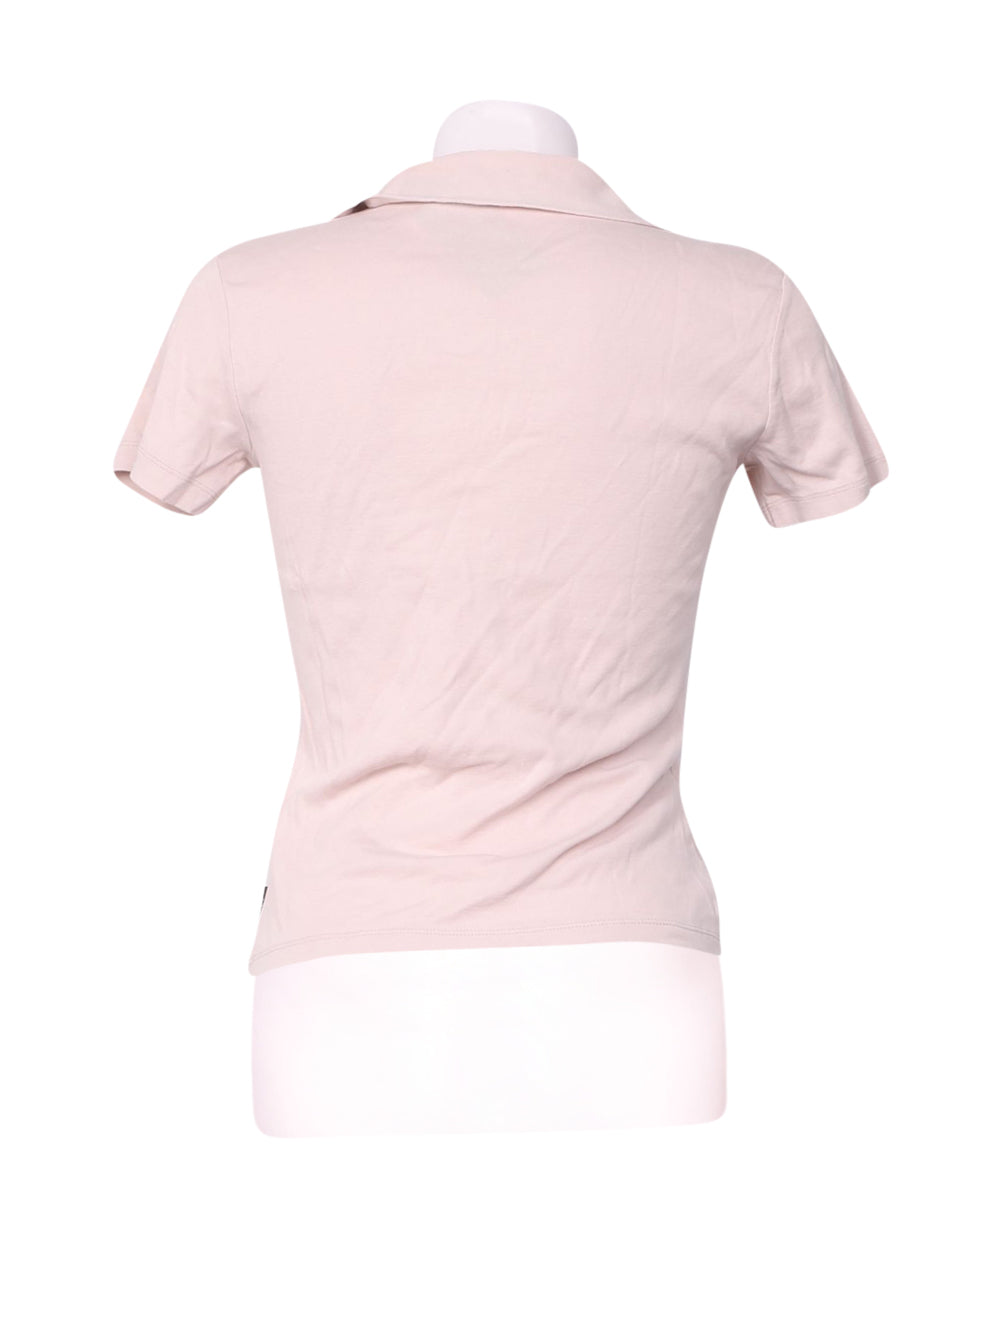 Back photo of Preloved Sisley Pink Woman's polo - size 8/S